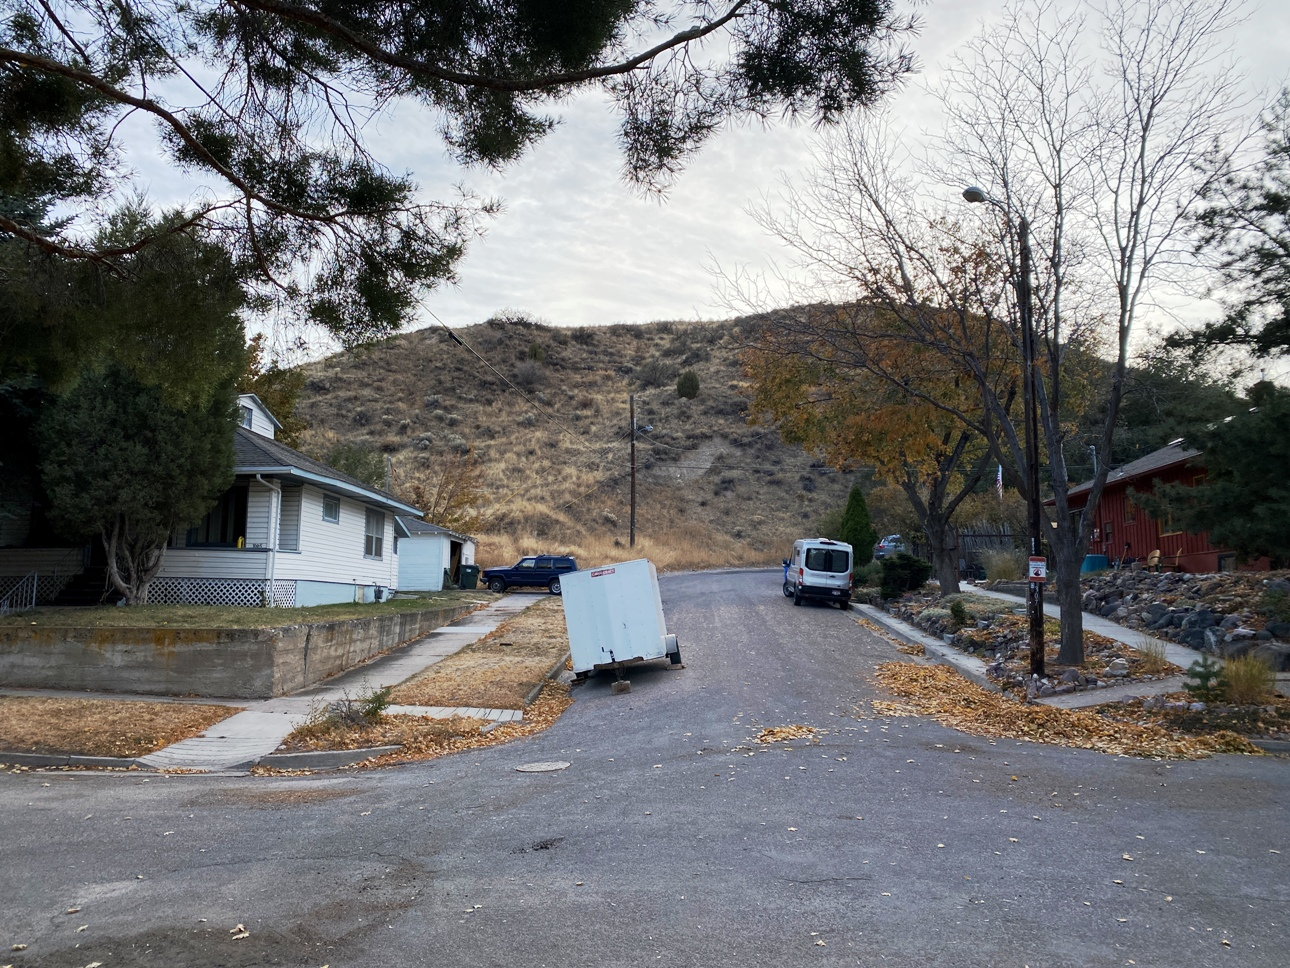 "<span style=""color: red"">*ON HOLD*</span>